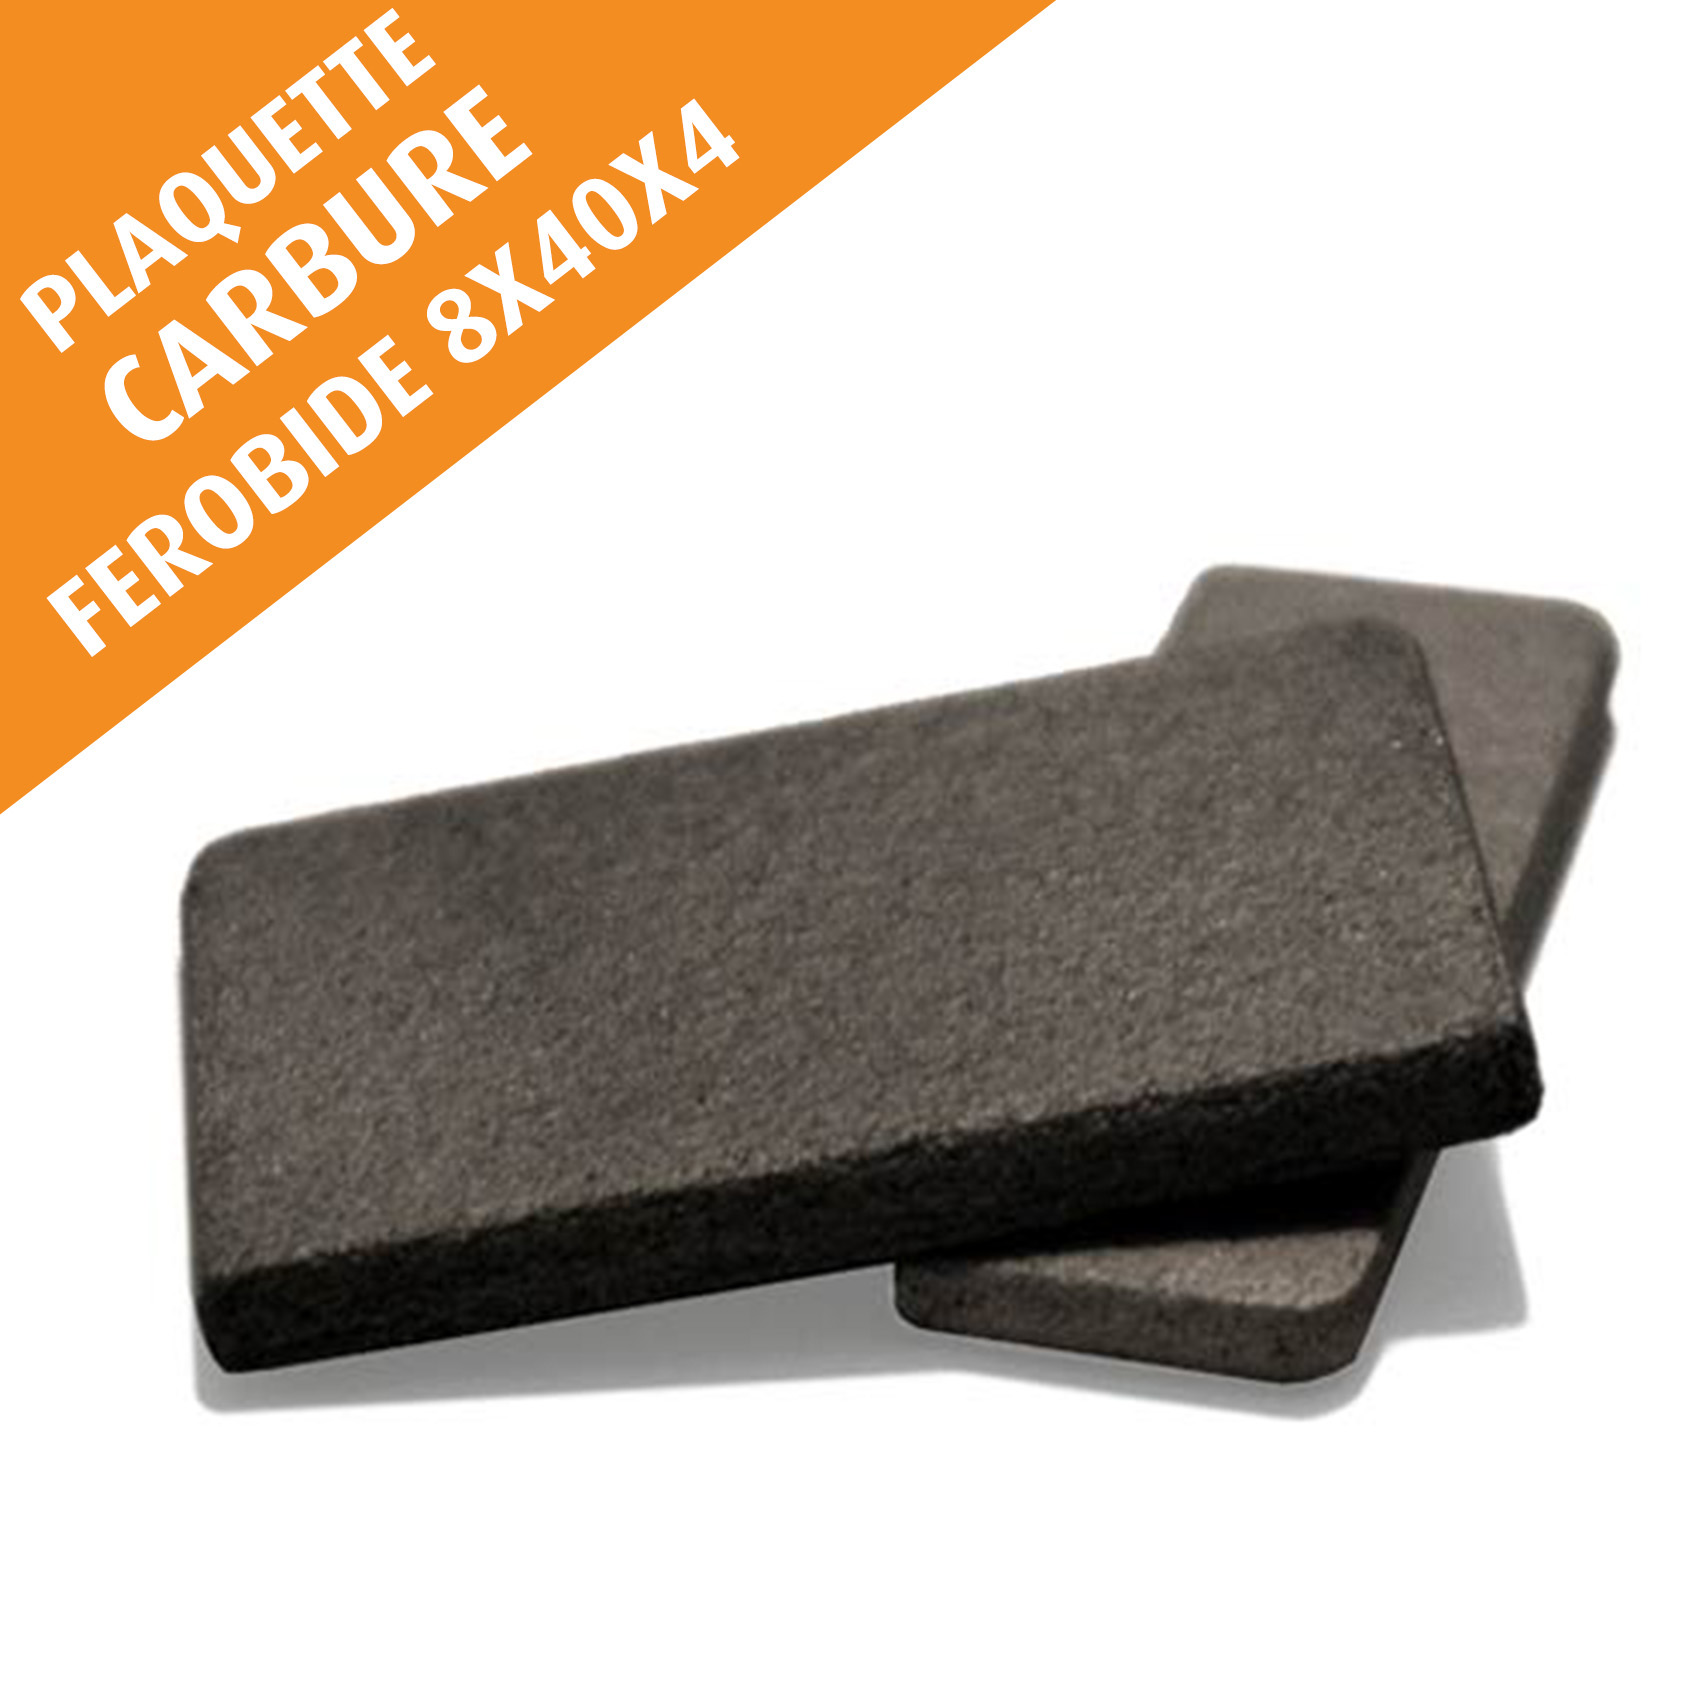 Lot de 10 plaquettes carbure FEROBIDE à souder, 8x40x4 mm